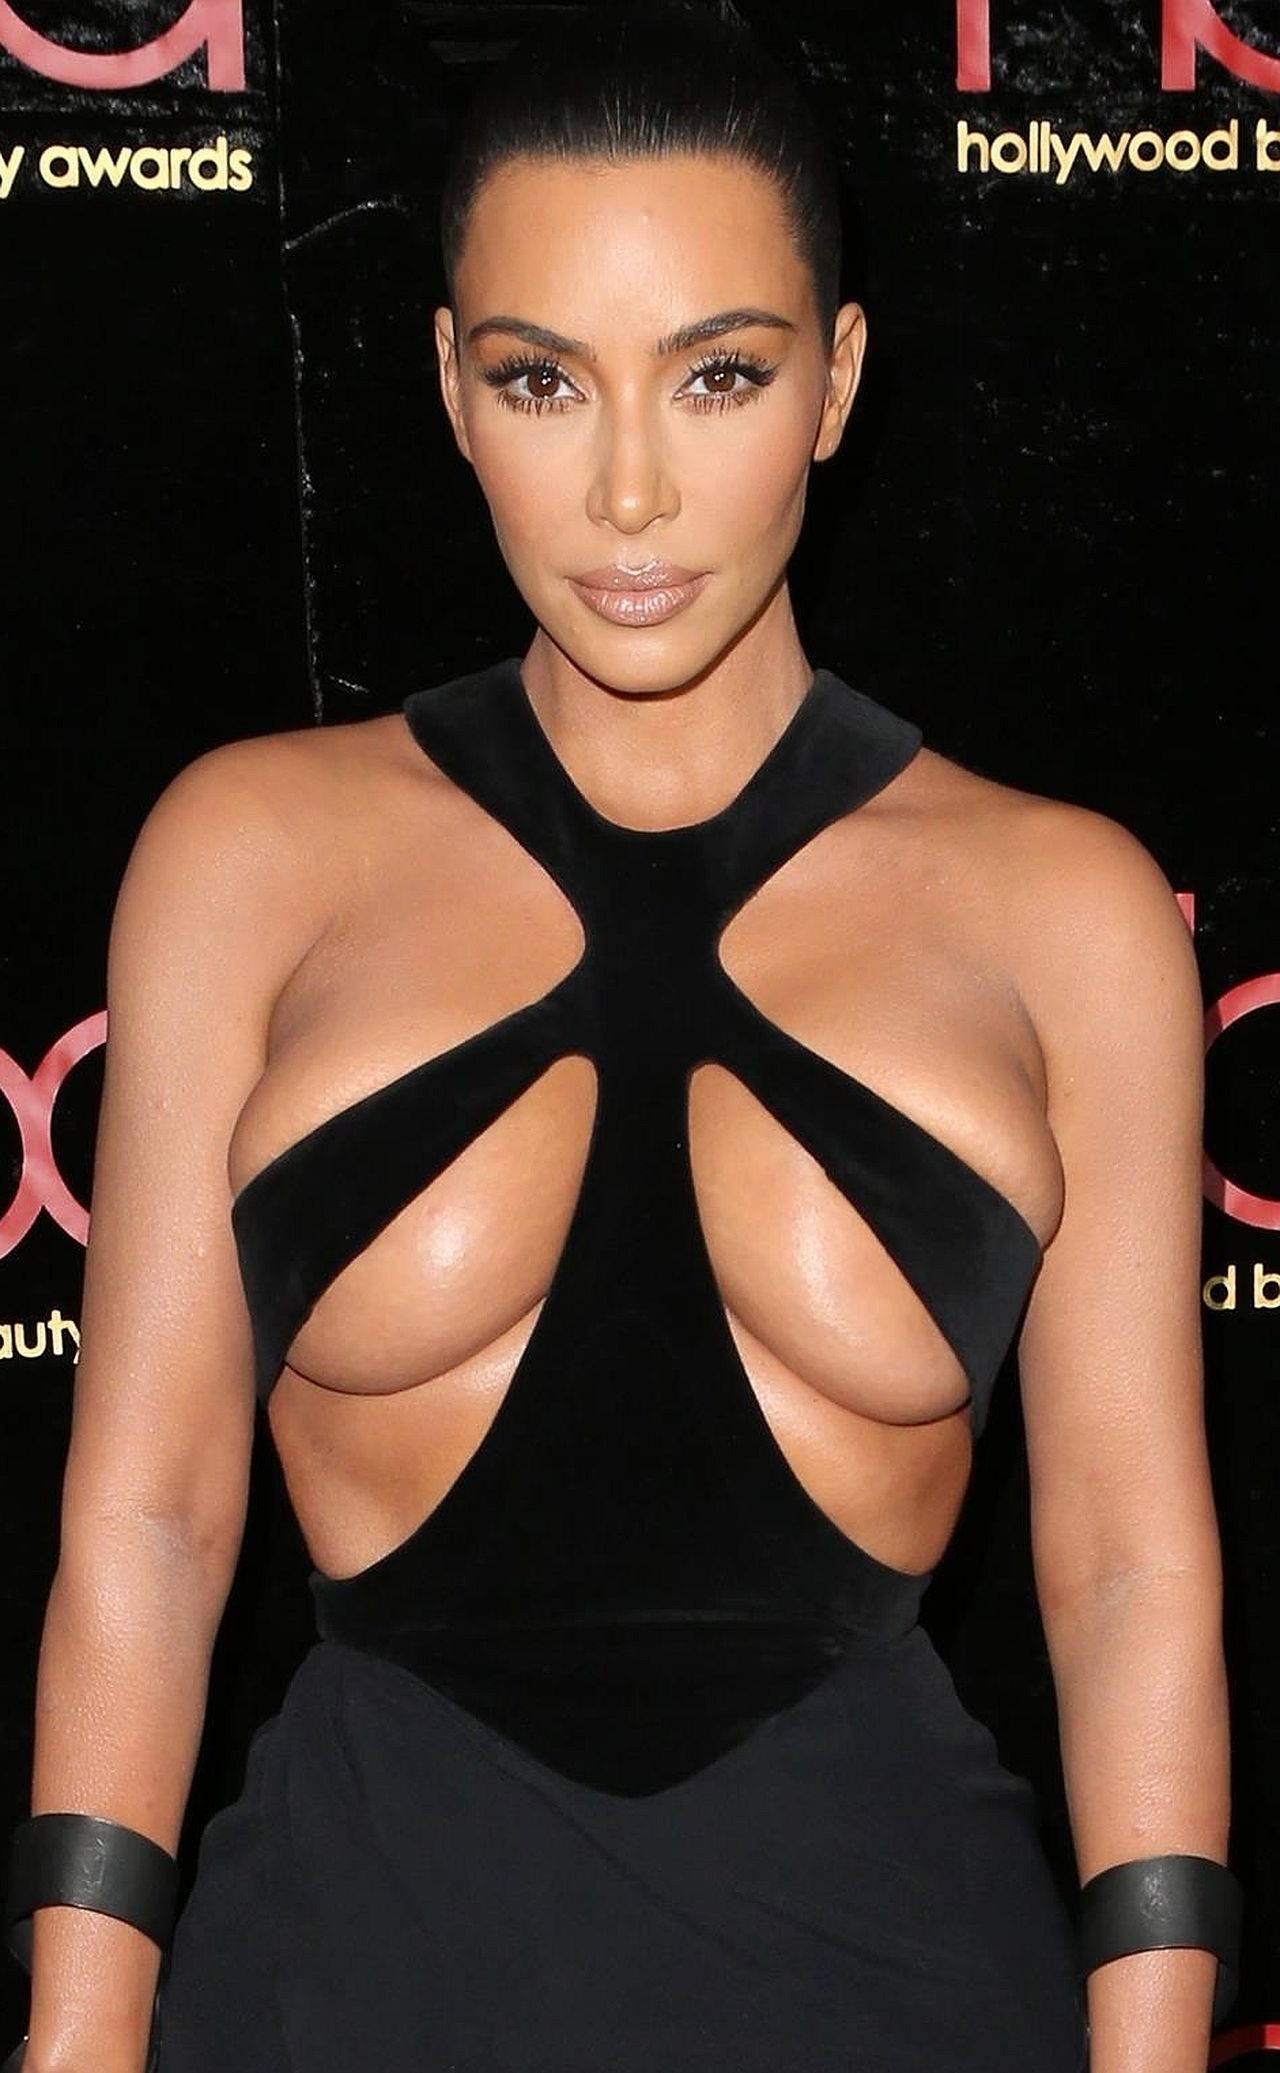 Kim Kardashian turns heads at the 5th Annual Hollywood Beauty Awards wearing sexy strapped dress Kim Kardashian West